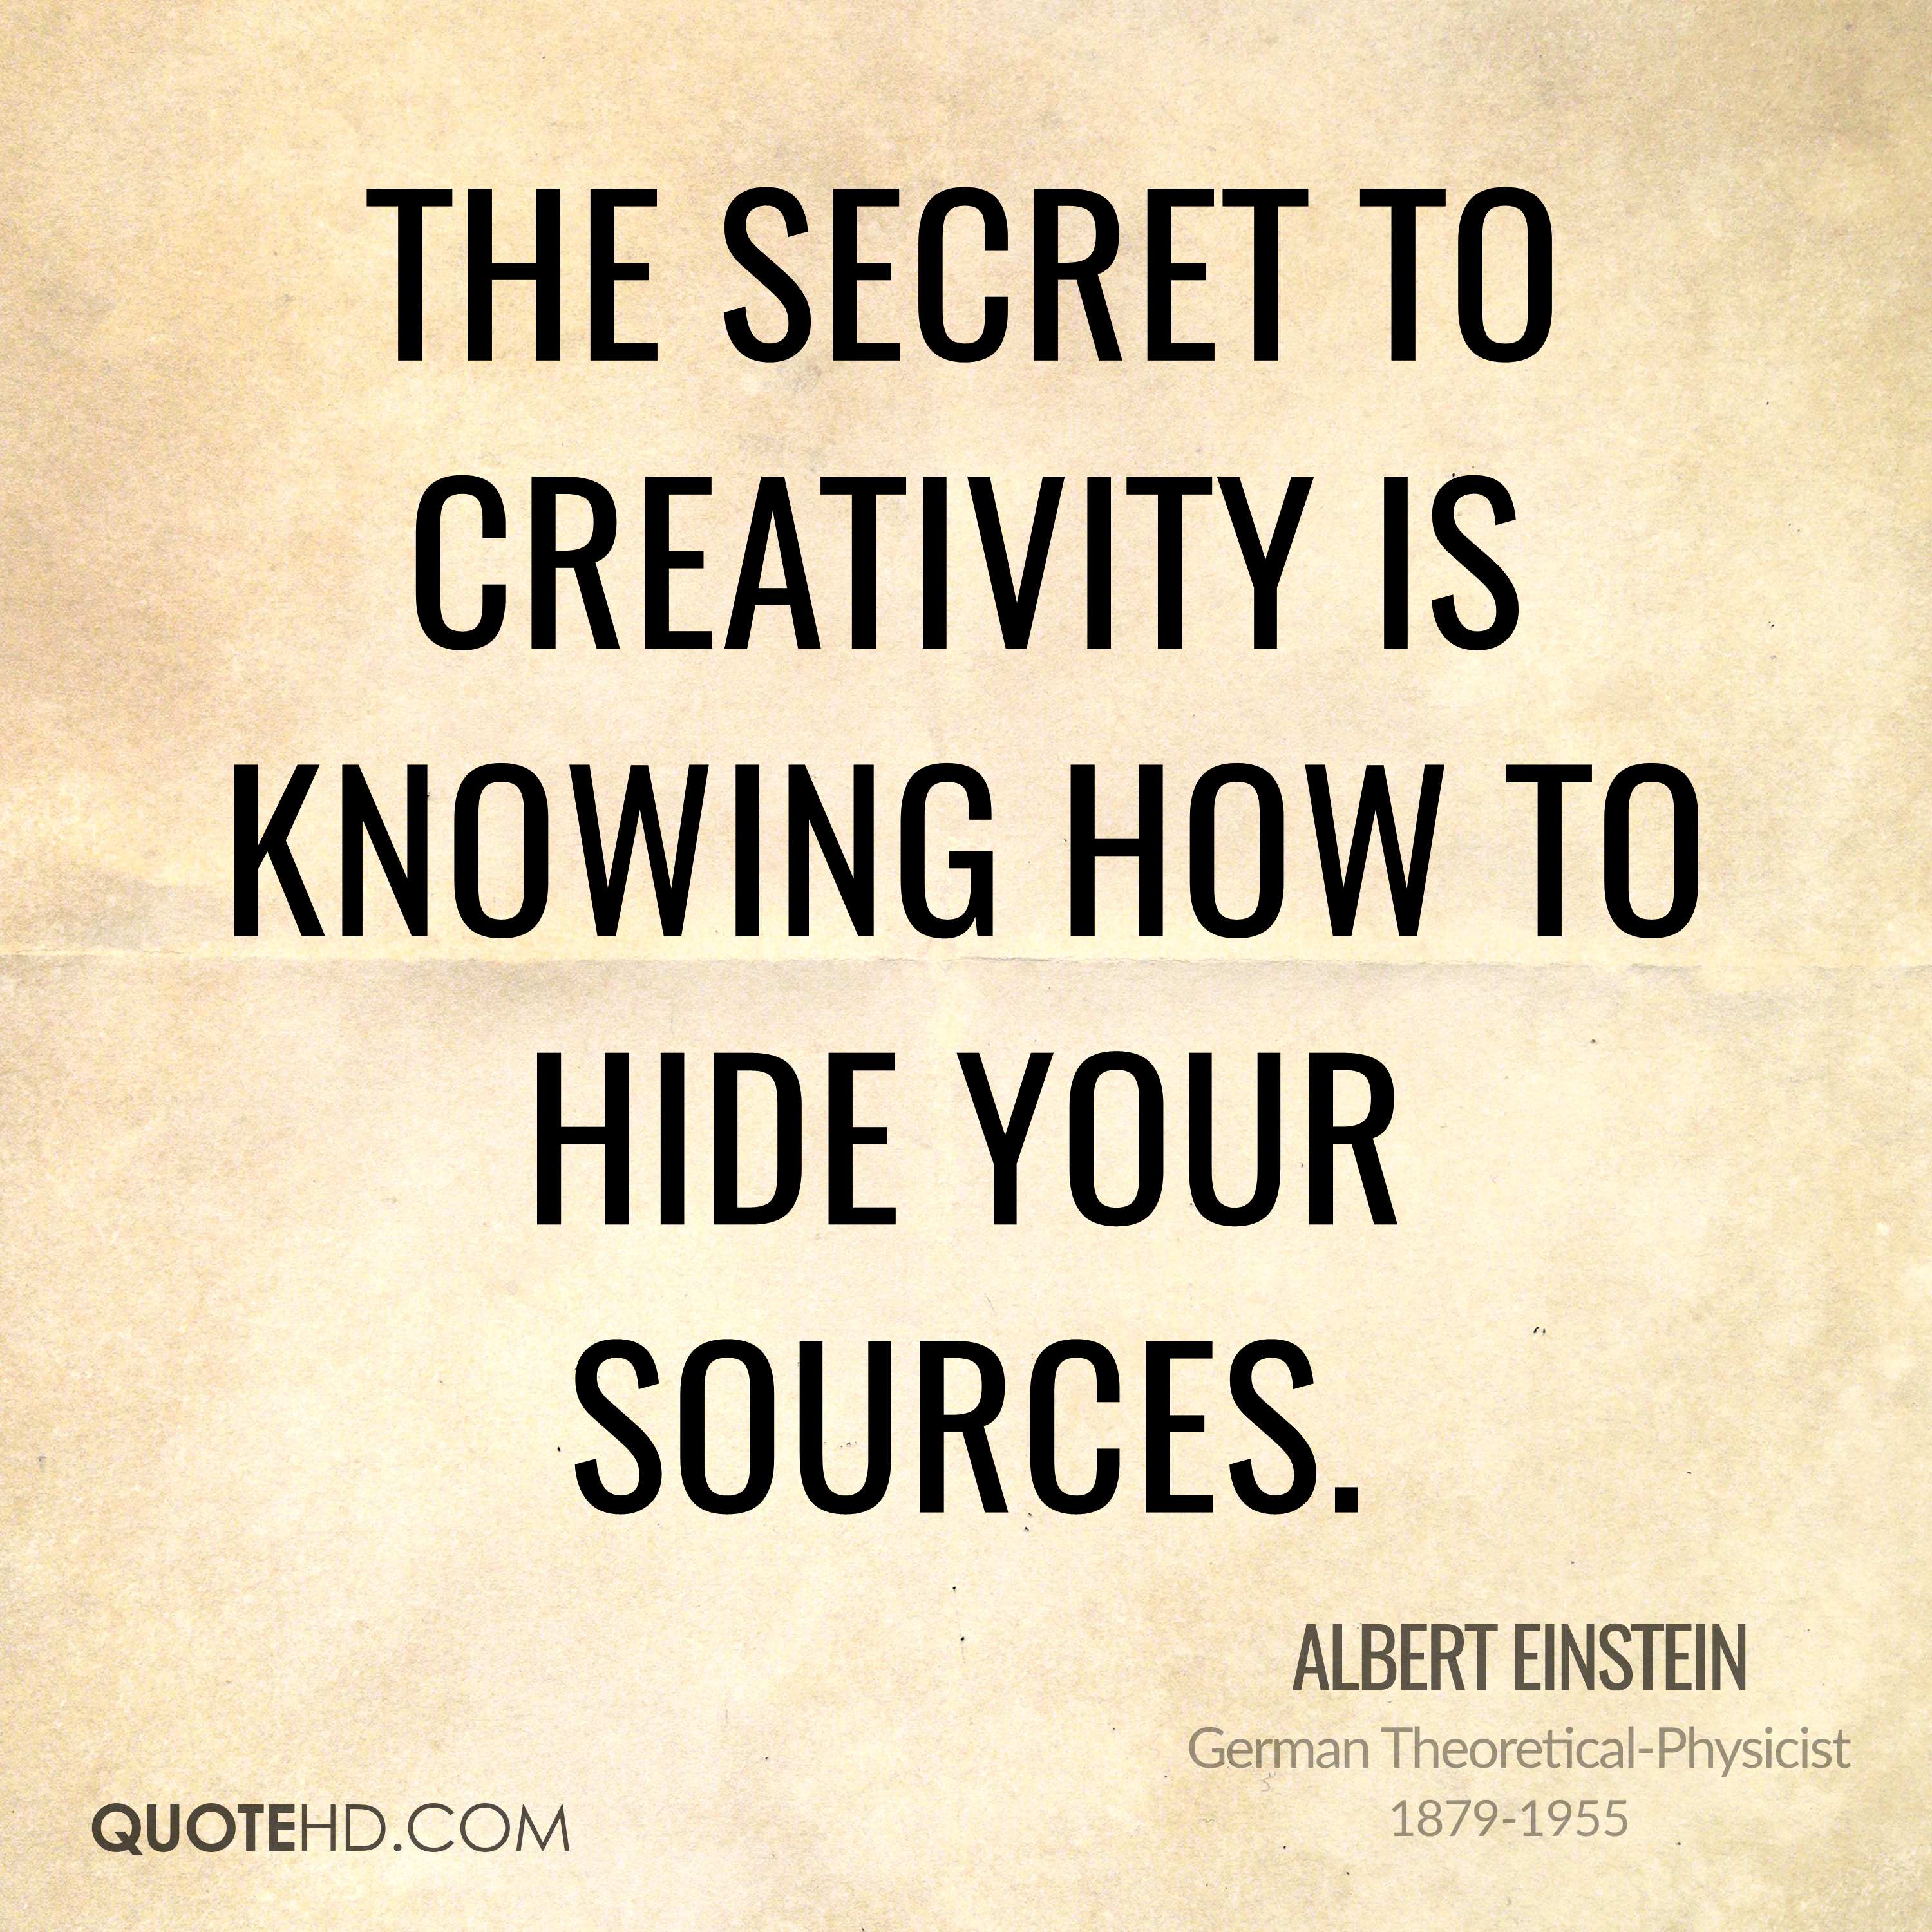 The secret to creativity is knowing how to hide your sources.